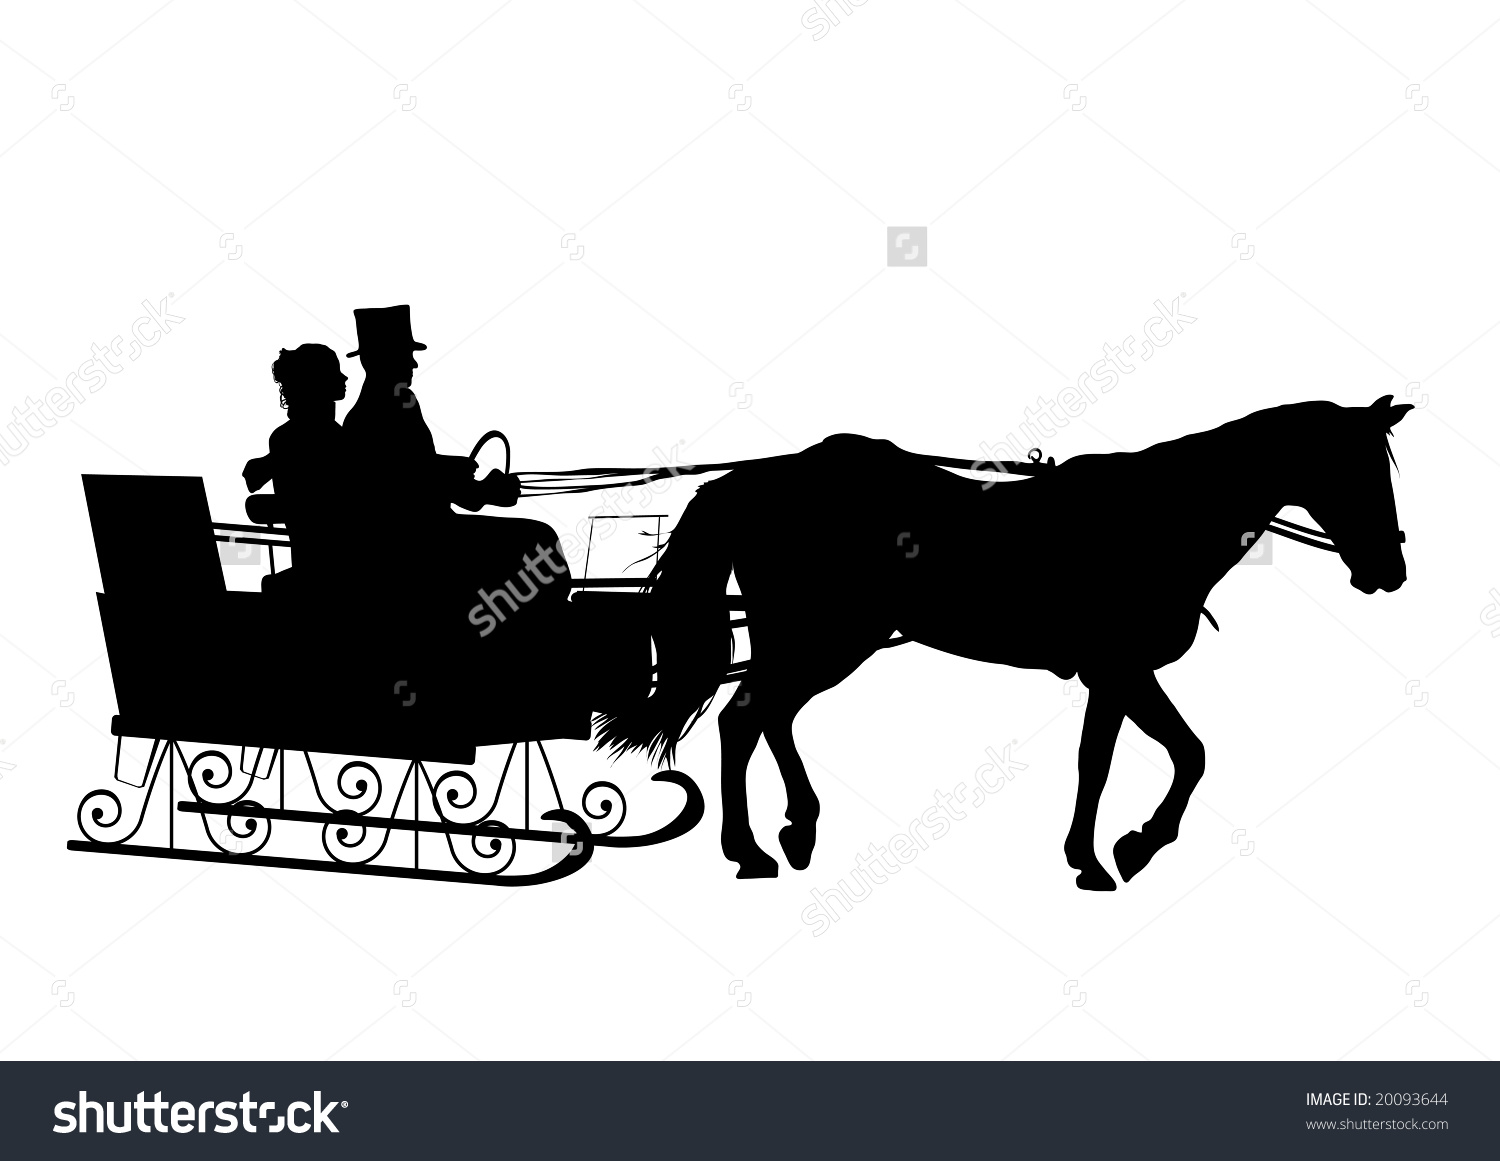 Silhouette Of Couple In Horse Drawn Sleigh Stock Photo 20093644.